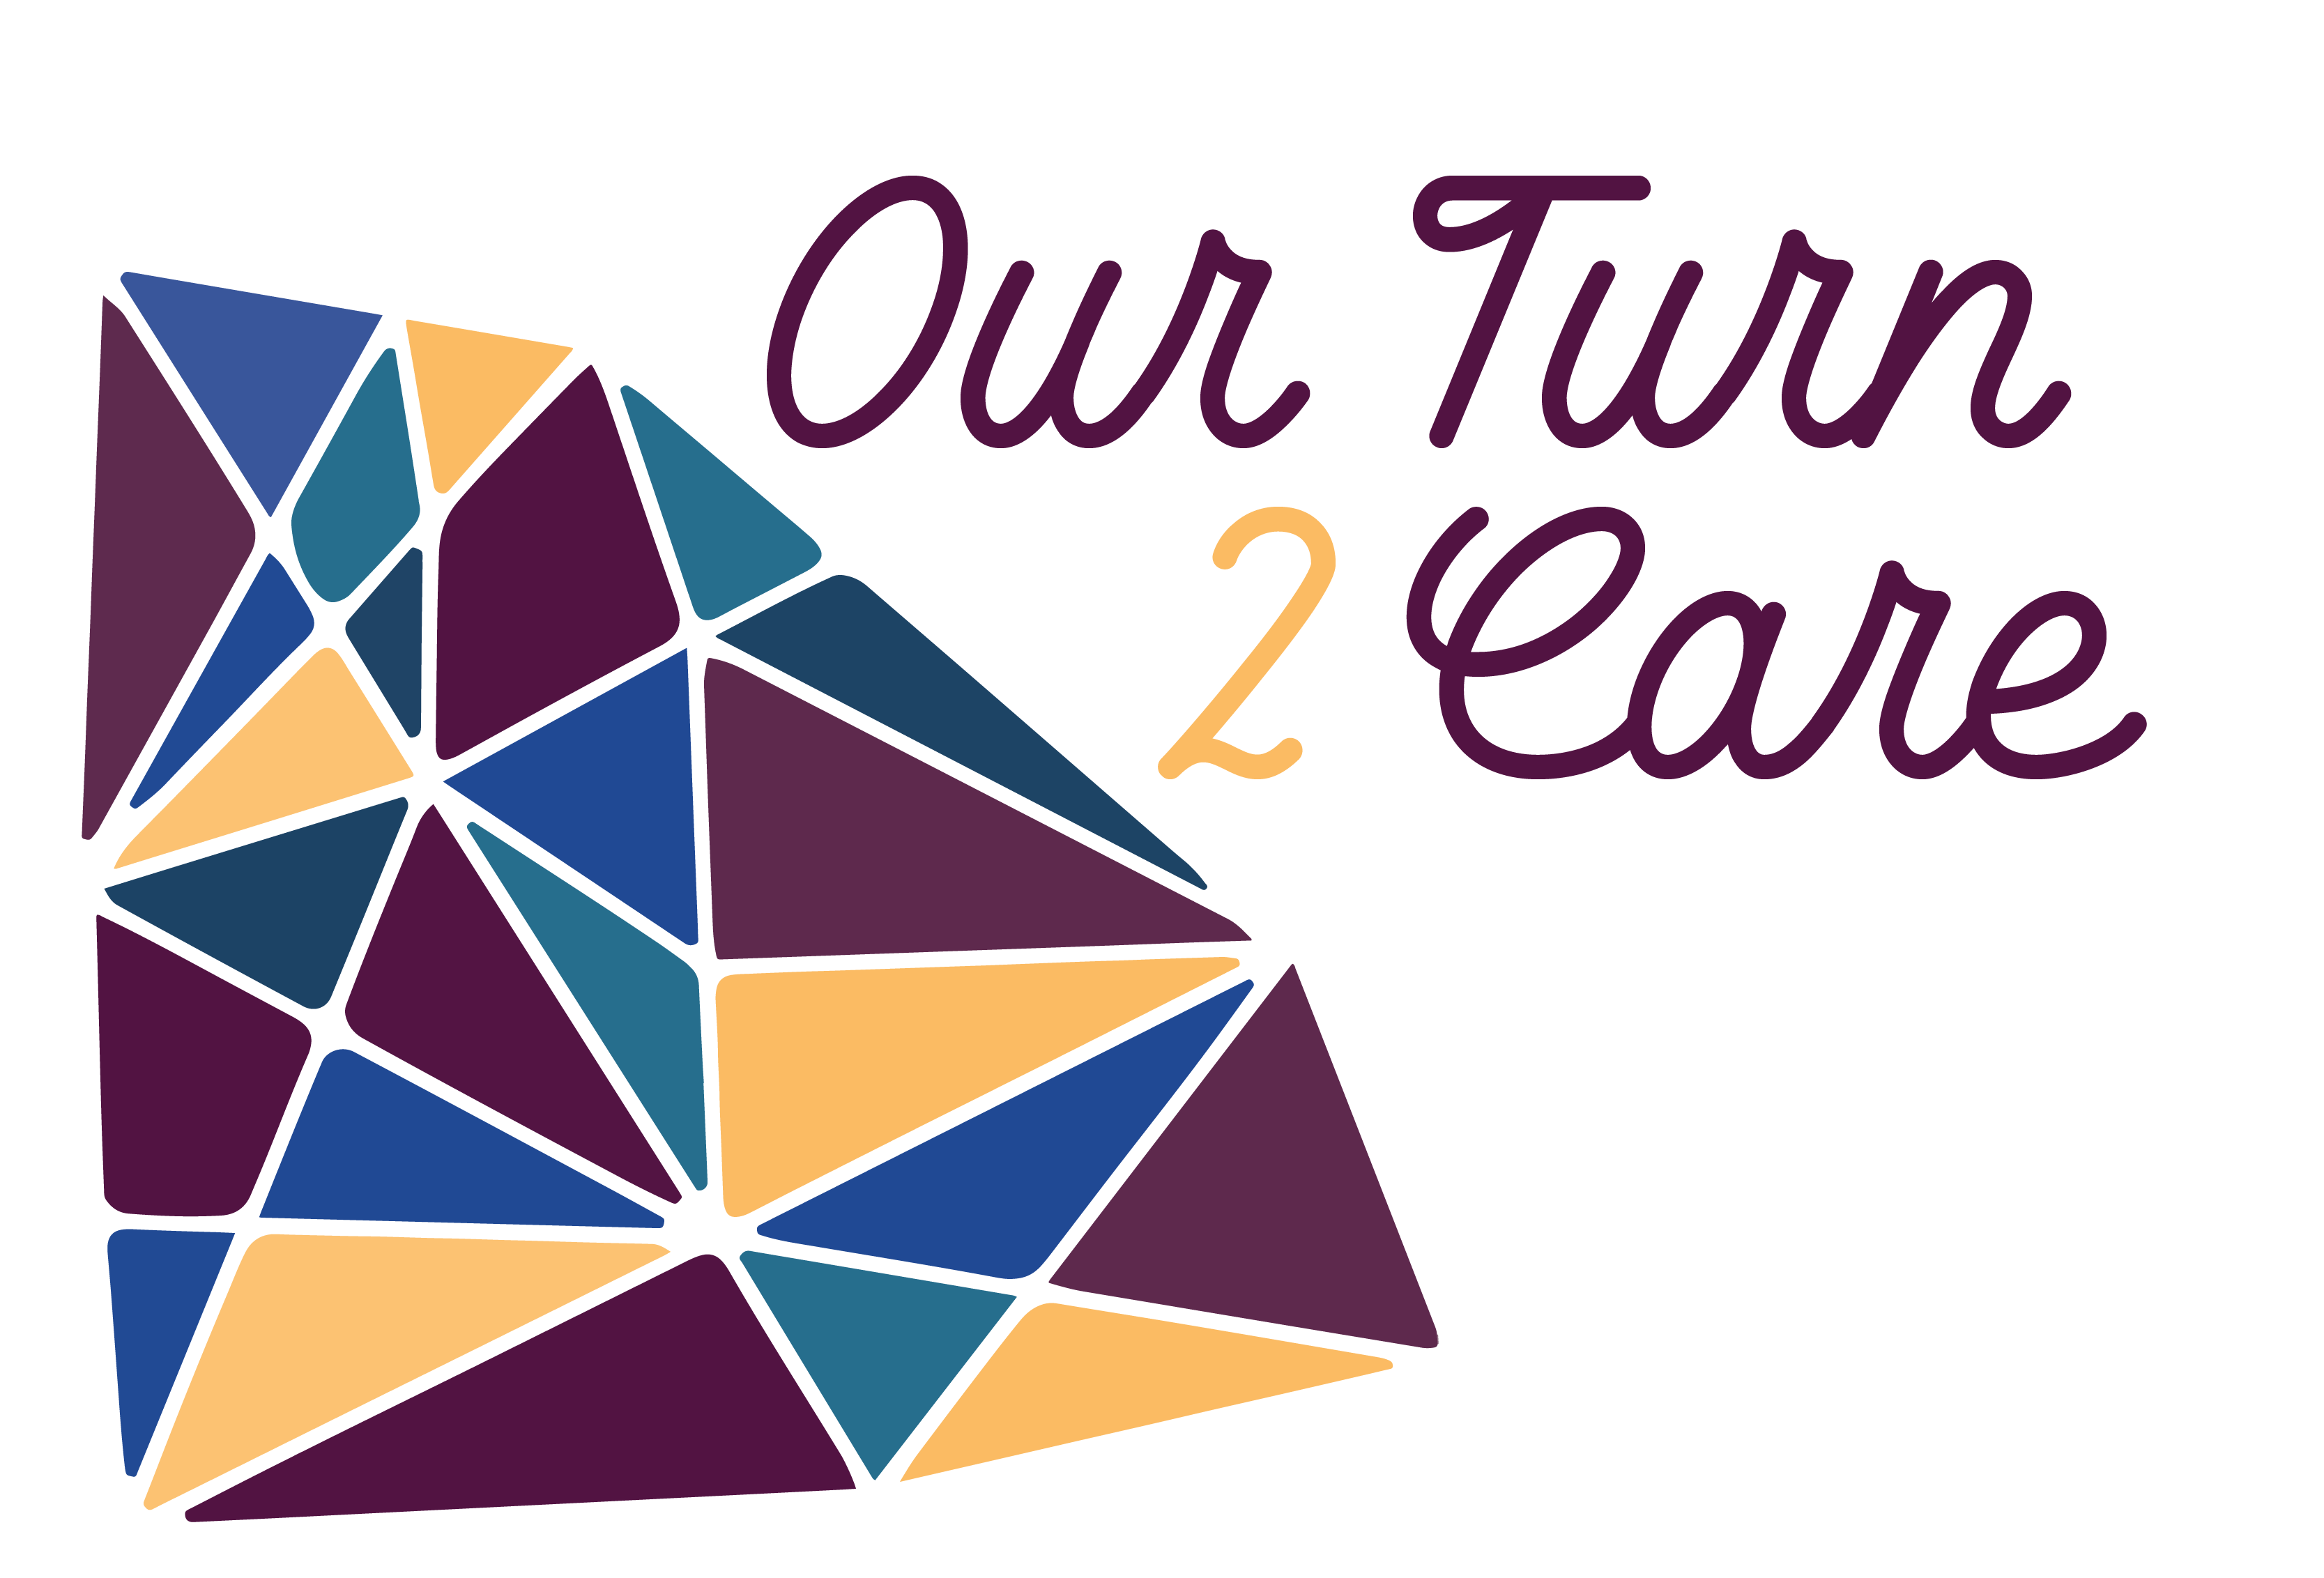 Our Turn 2 Care